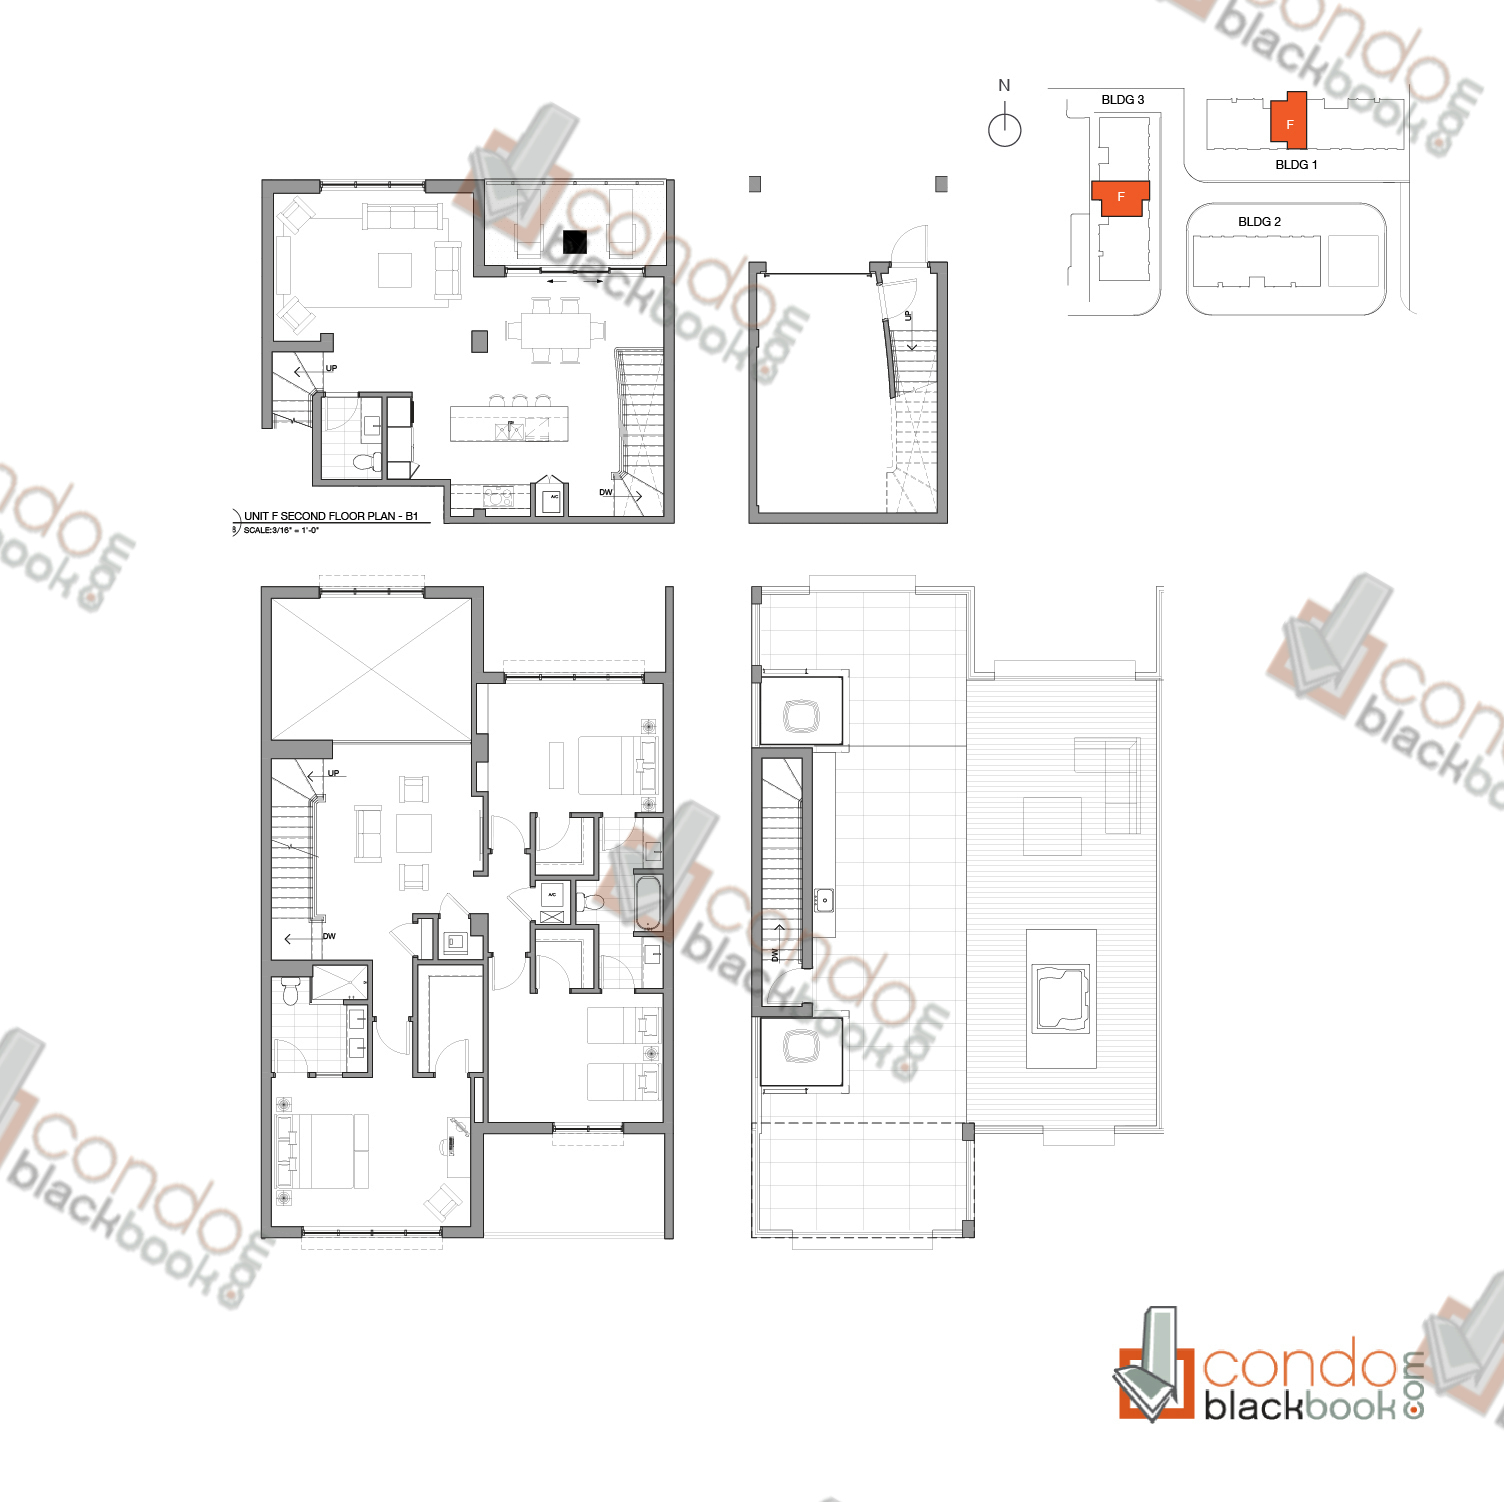 Floor plan for One Bay Edgewater Miami, model Residence F, line 107, 307, 3 / 3.5 + Family Room + Indoor garage bedrooms, 2,561 sq ft